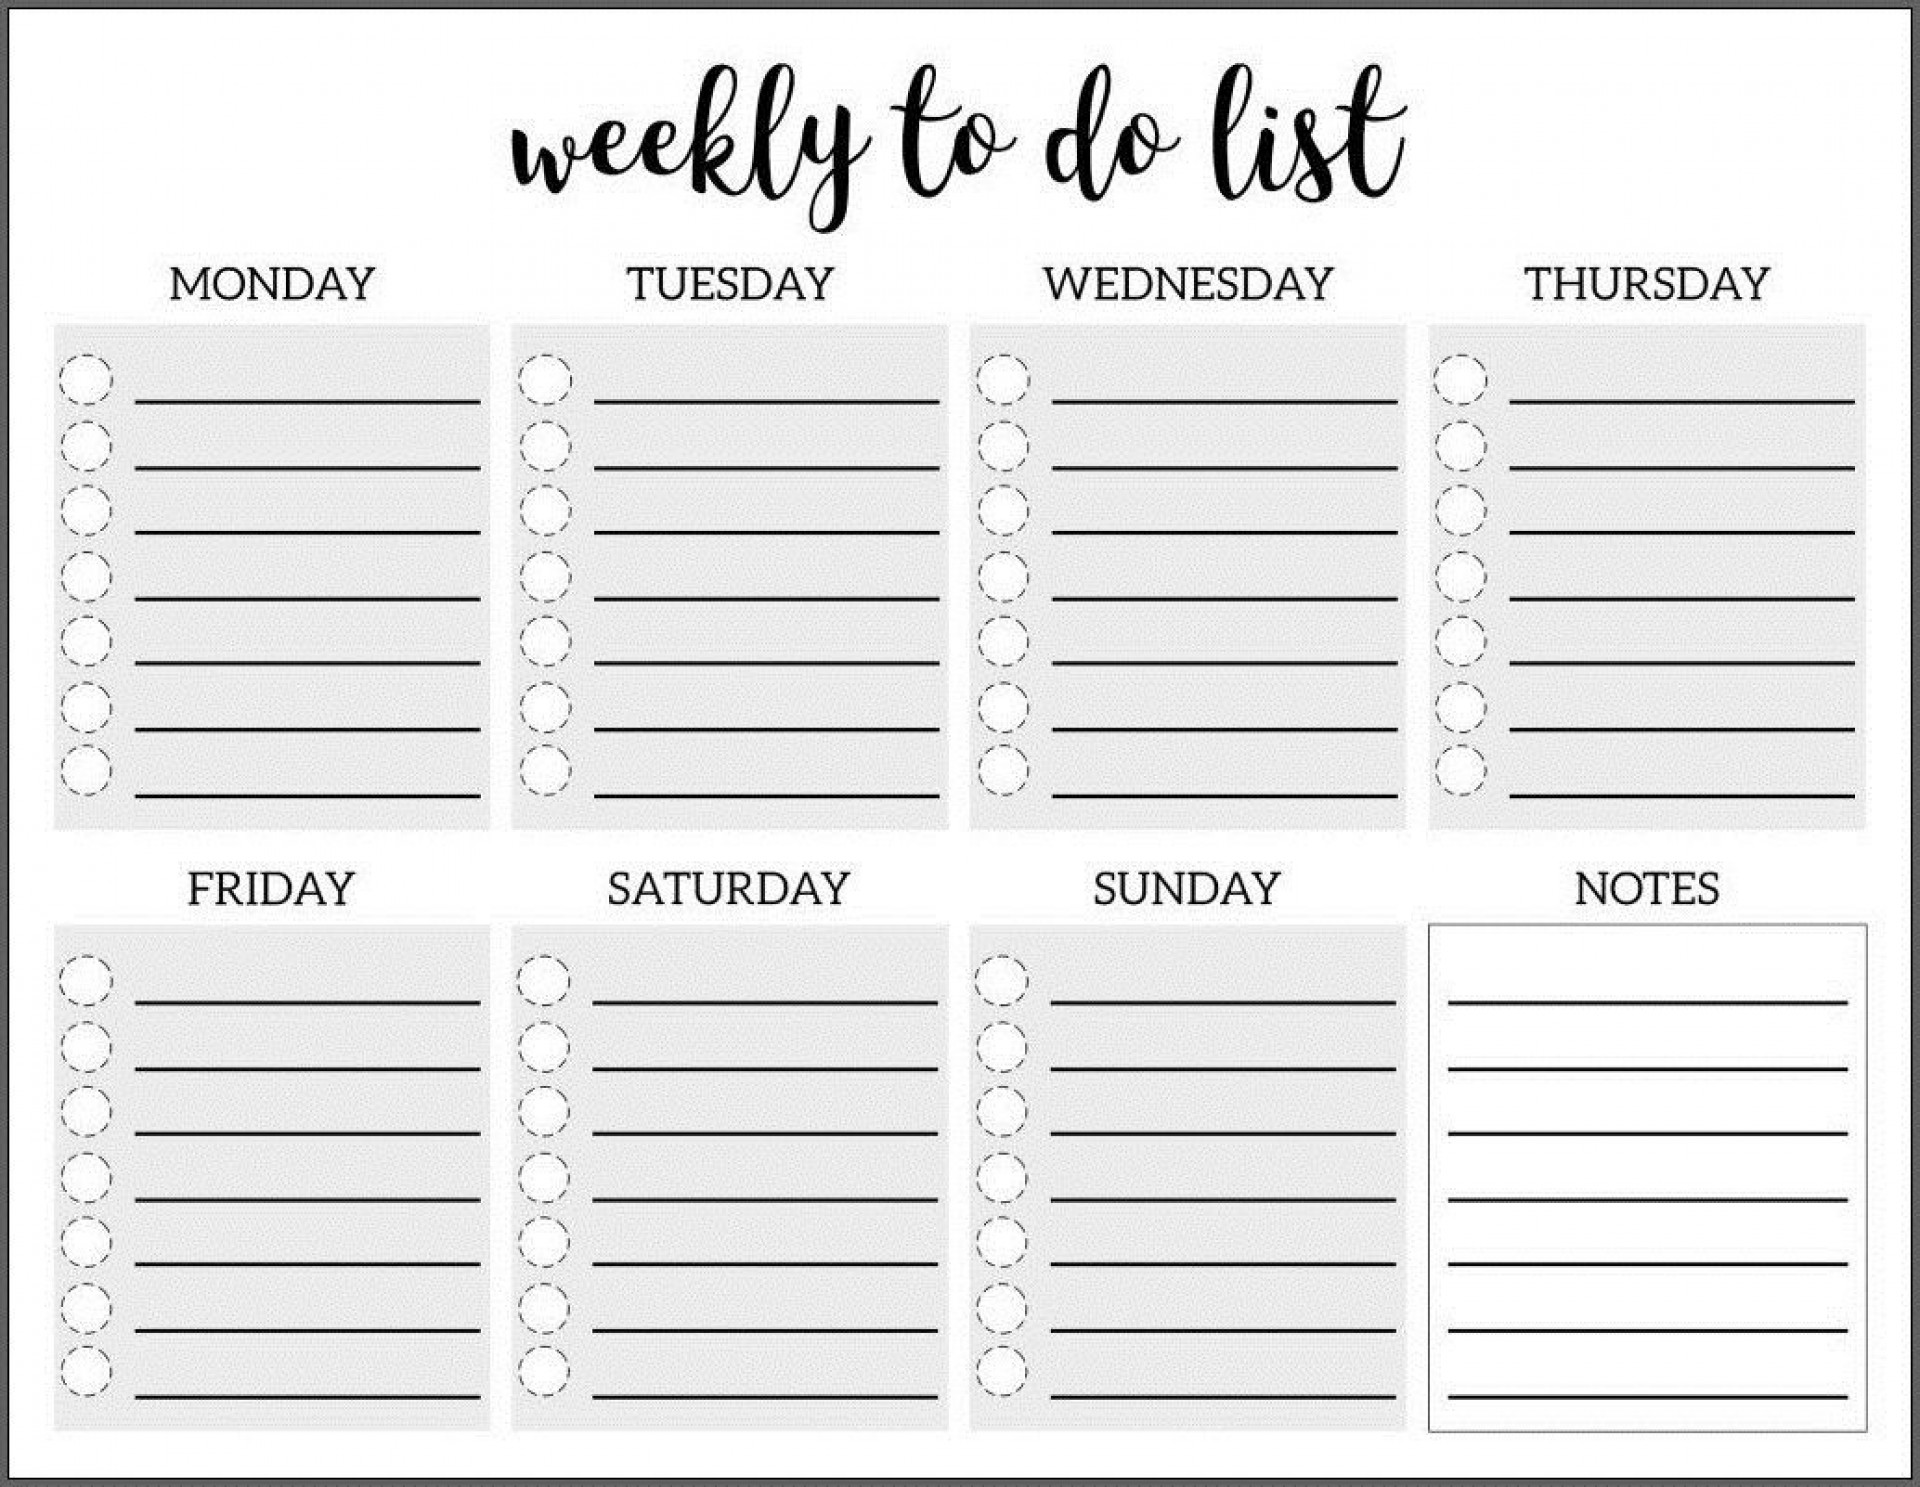 009 Amazing To Do List Template Free Concept 1920